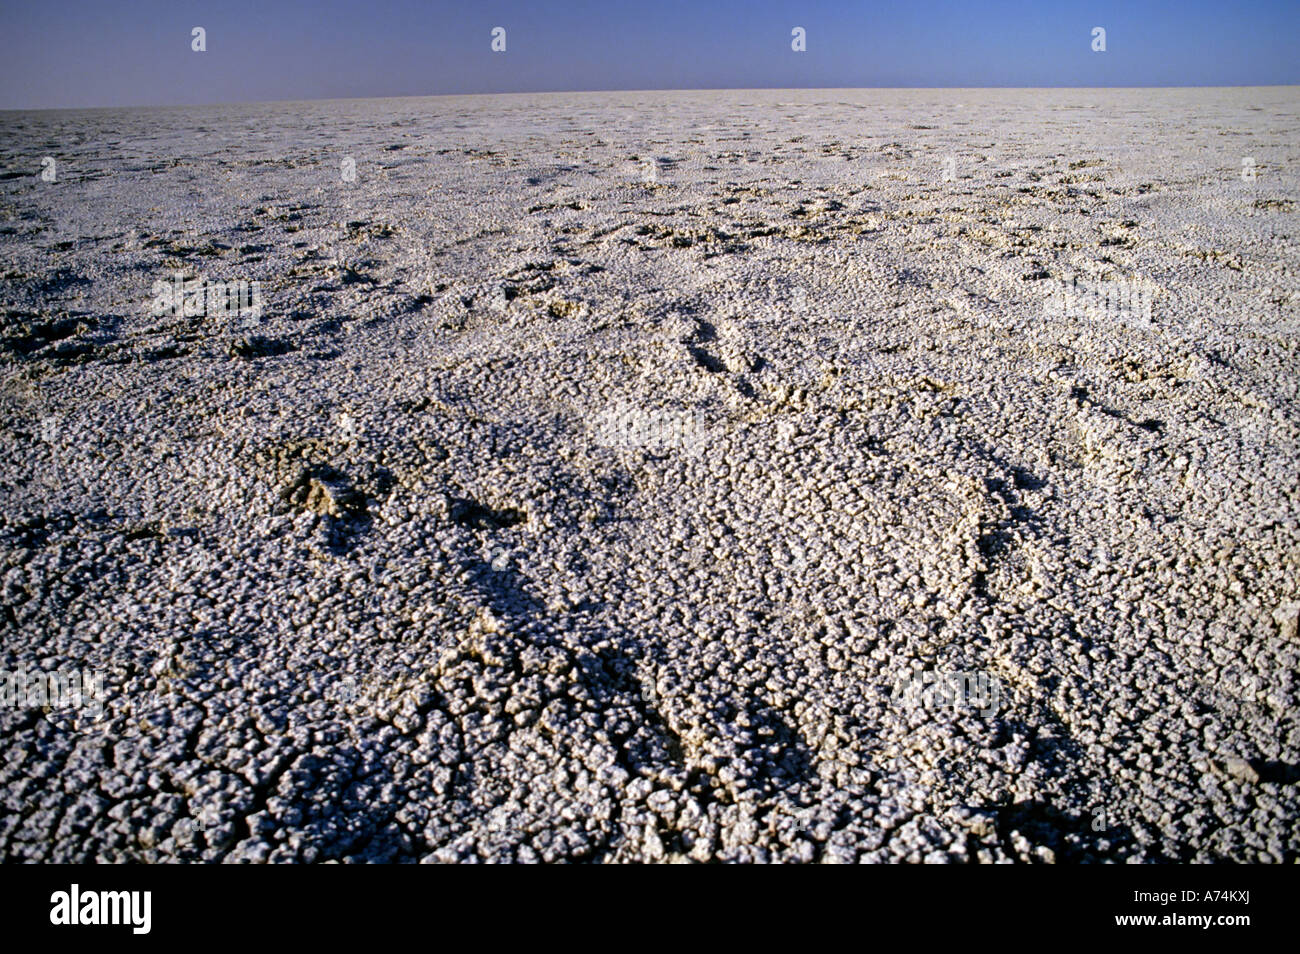 The dried up wasteland of the Etosha pan Namibia Africa - Stock Image